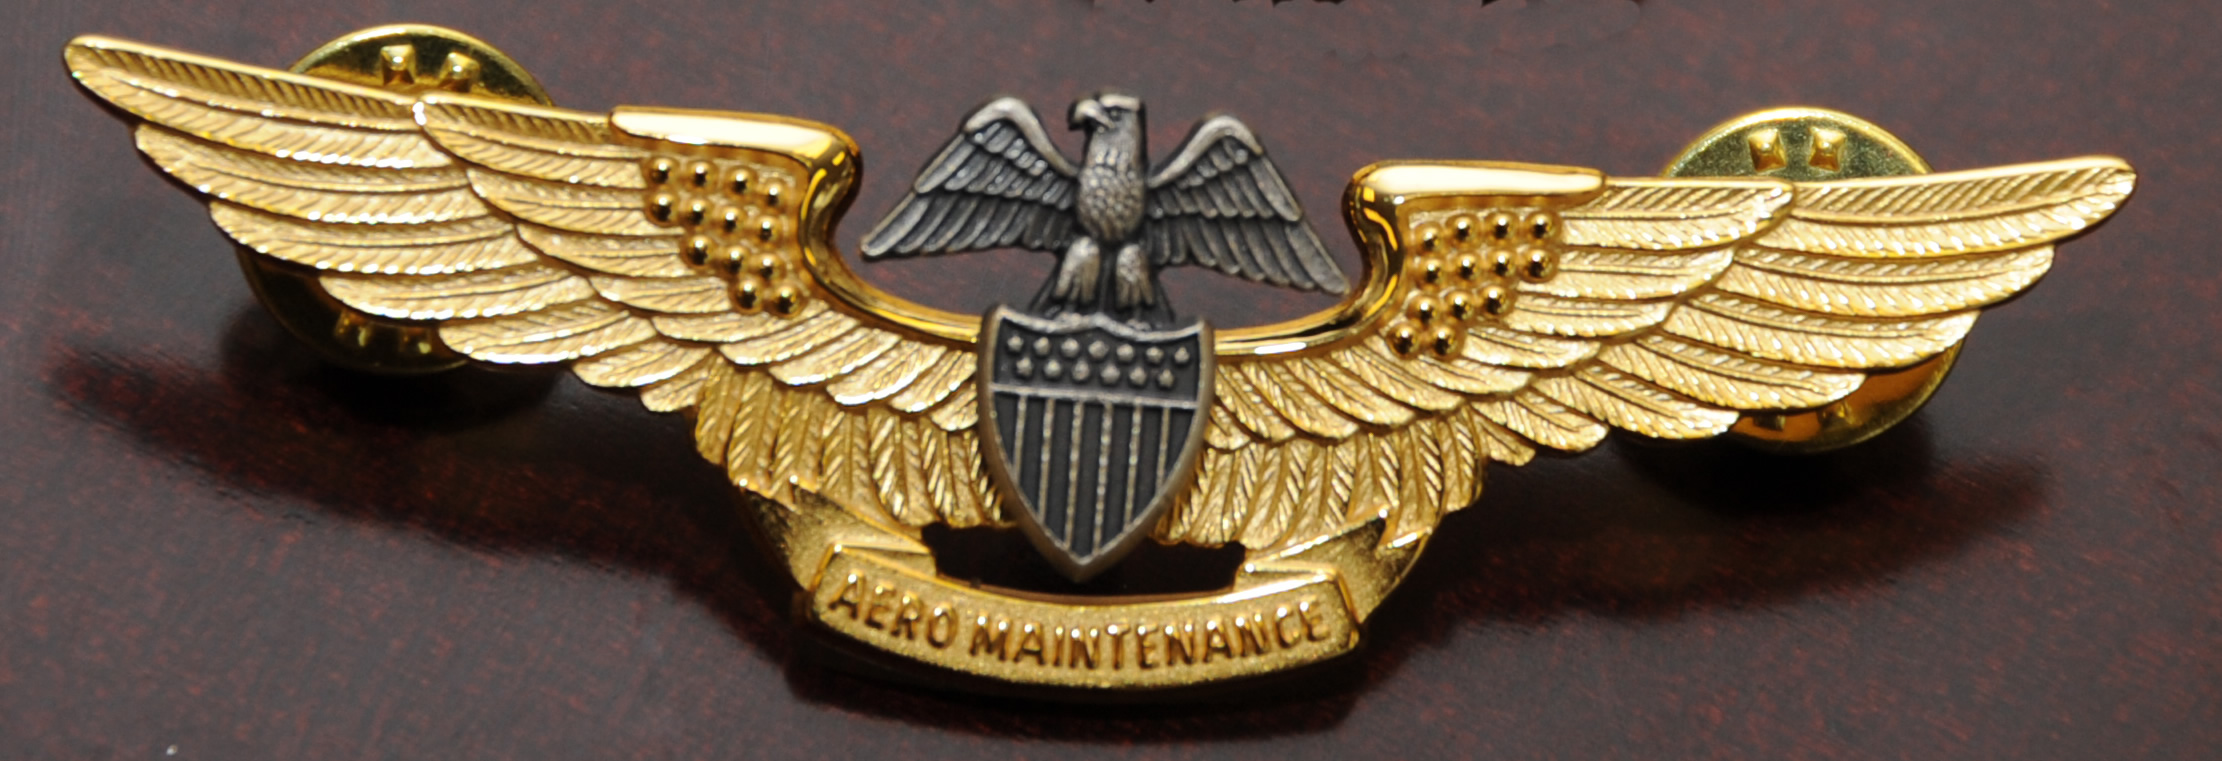 File Professional Aviation Maintenance Officer Insignia